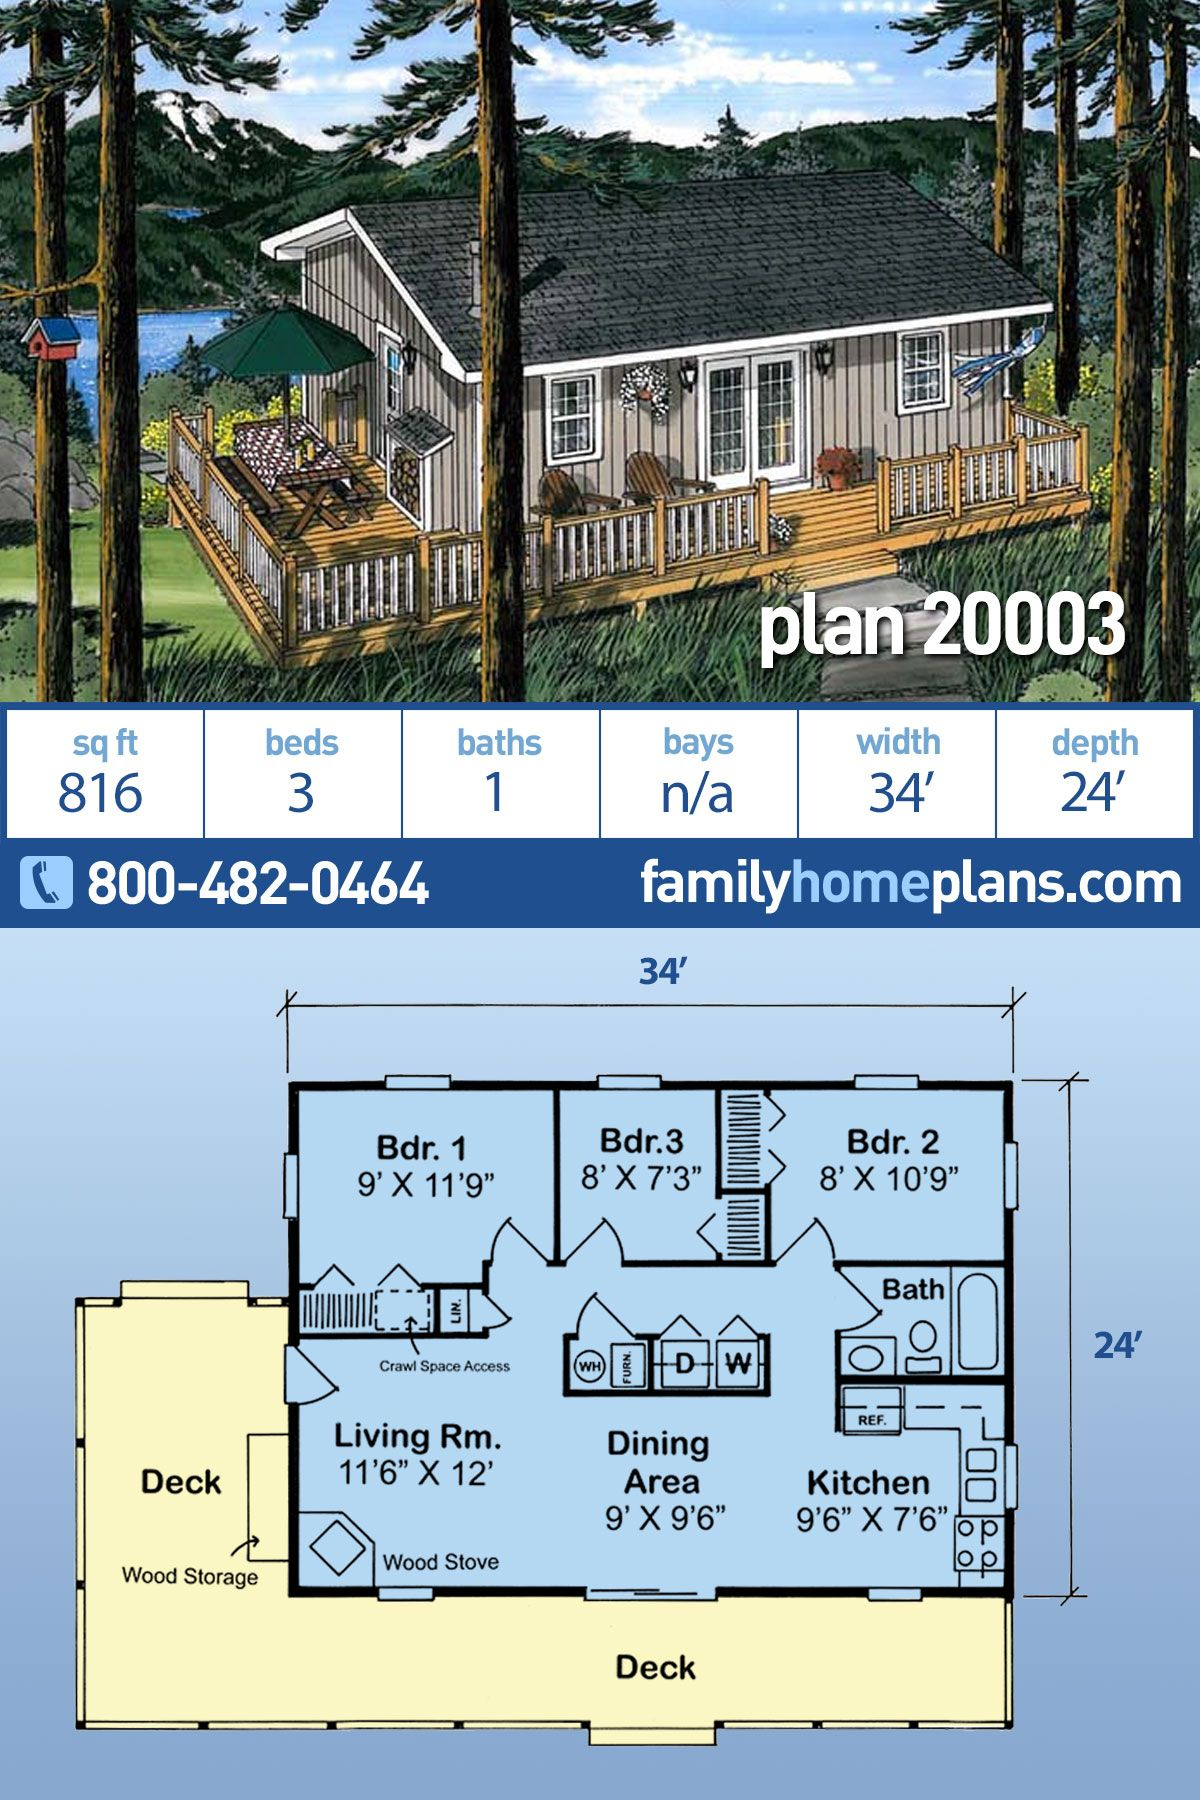 Affordable Small Home Floor Plan with 816 Sq Ft 3 Bedrooms 1 Bath and Wrap Around Deck